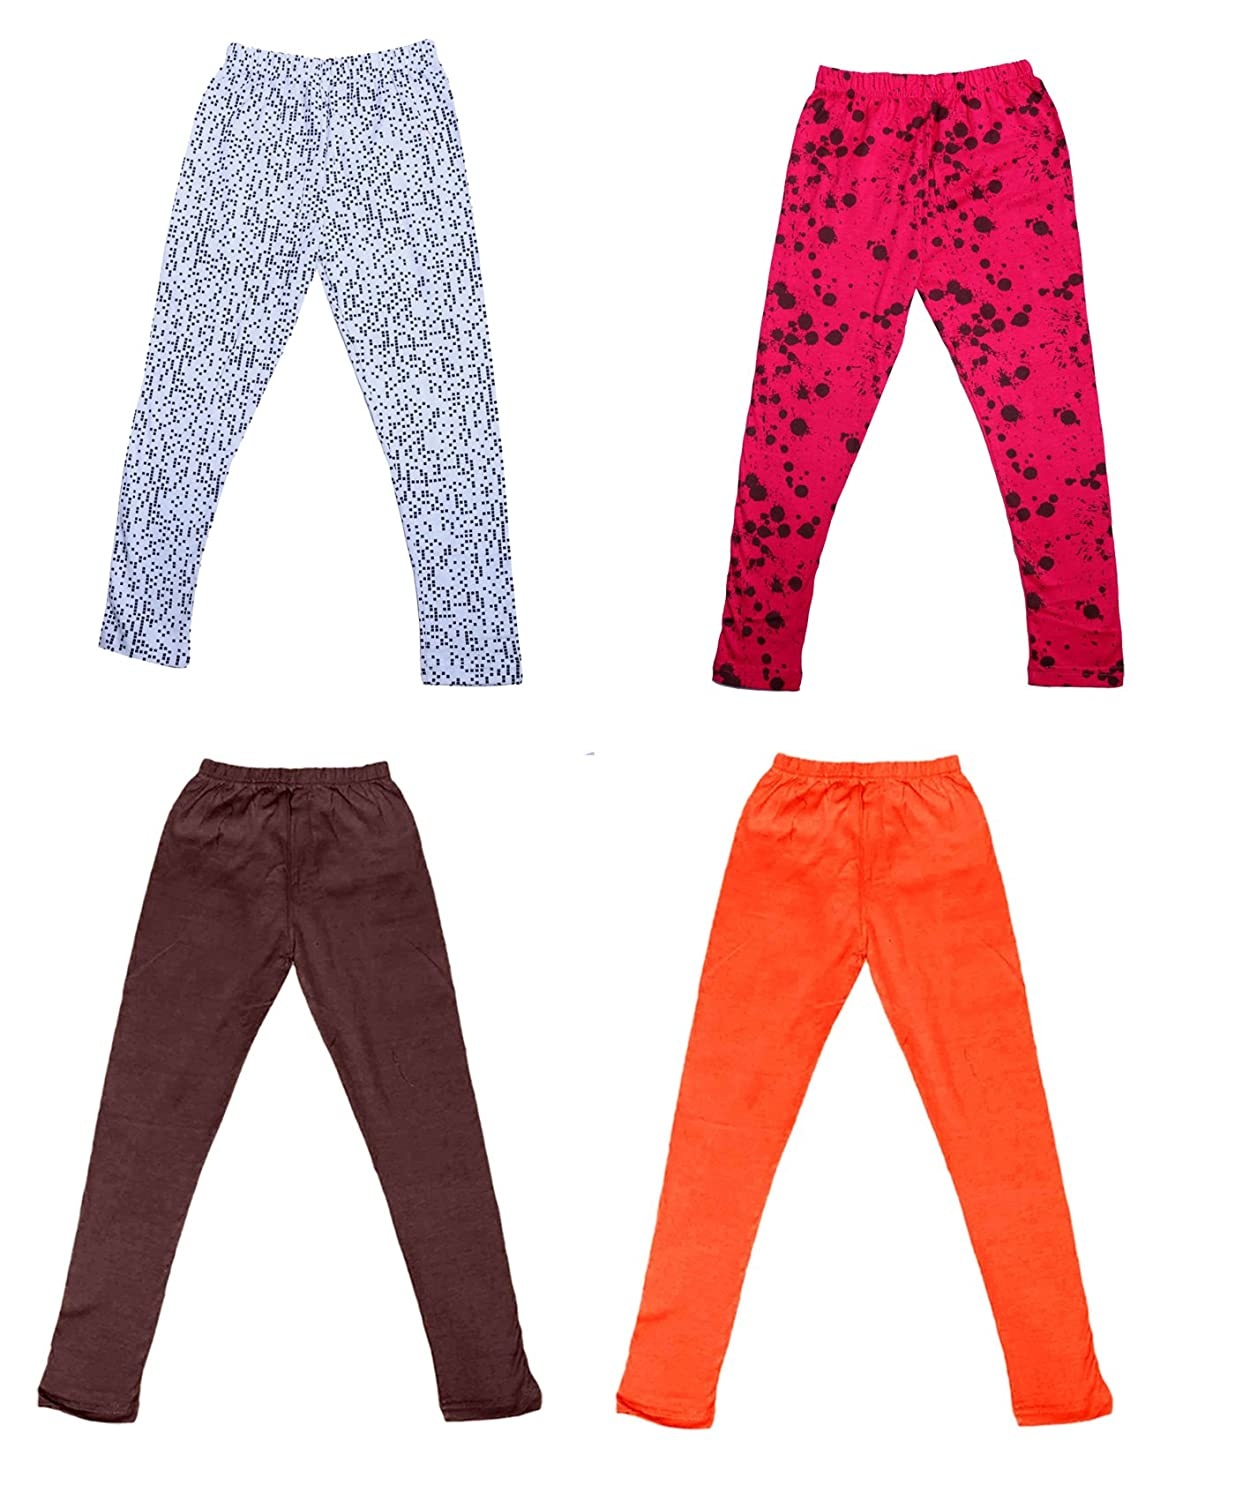 /_Multicolor/_Size-7-8 Years/_71413142021-IW-P4-30 and 2 Cotton Printed Legging Pants Indistar Girls 2 Cotton Solid Legging Pants Pack Of 4